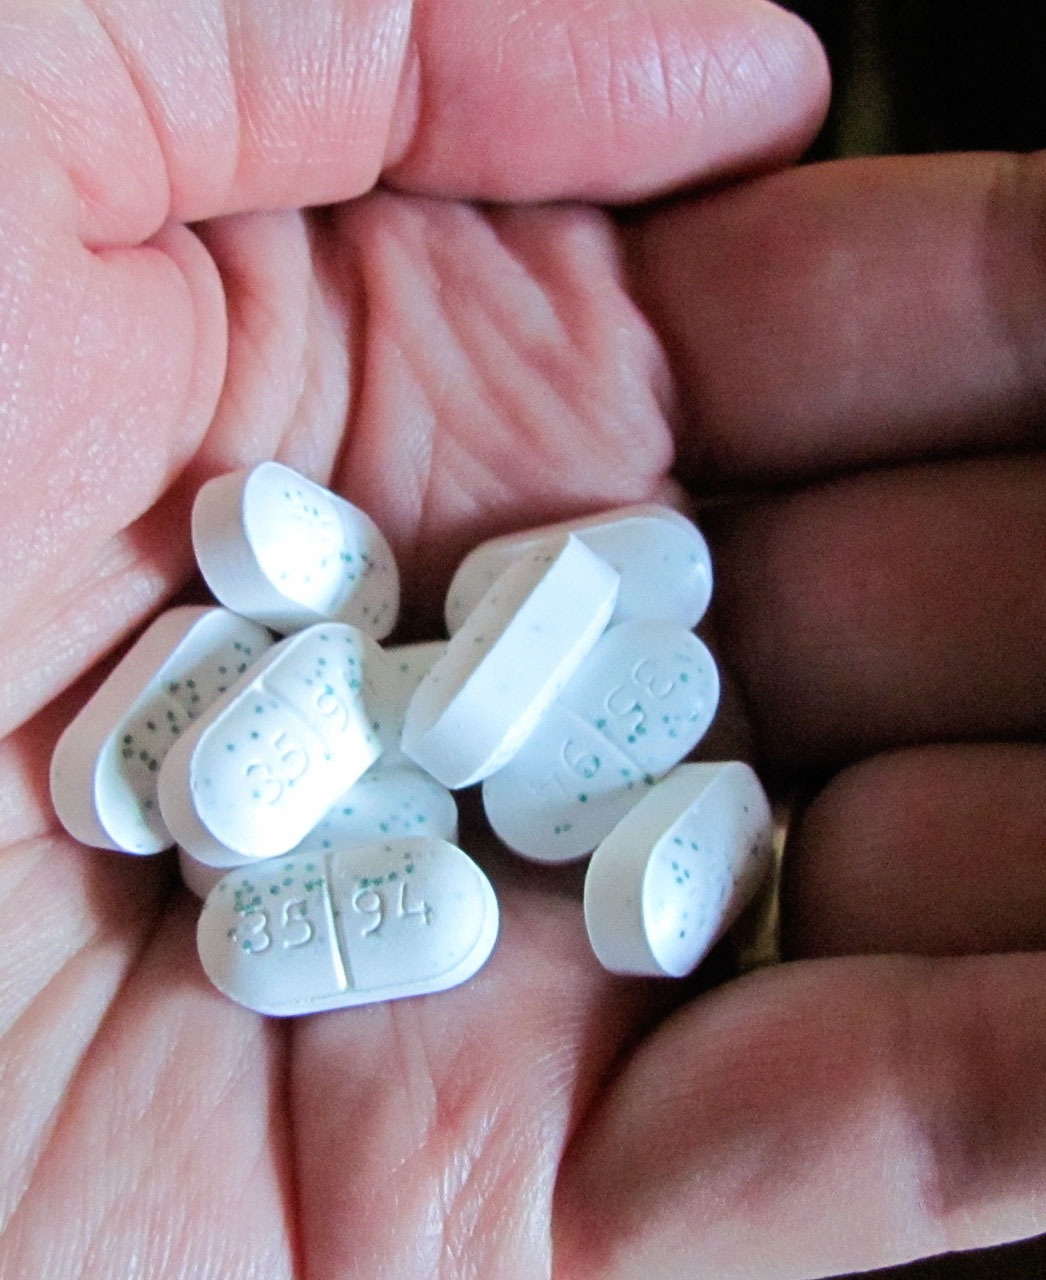 Opioid overdoses are the leading cause of injuries in the United States, according to the Center for Disease Control and Prevention. Legislators in Washington, D.C. recently approved multiple bills addressing various aspects of the opioid crisis | Stock image, St. George News